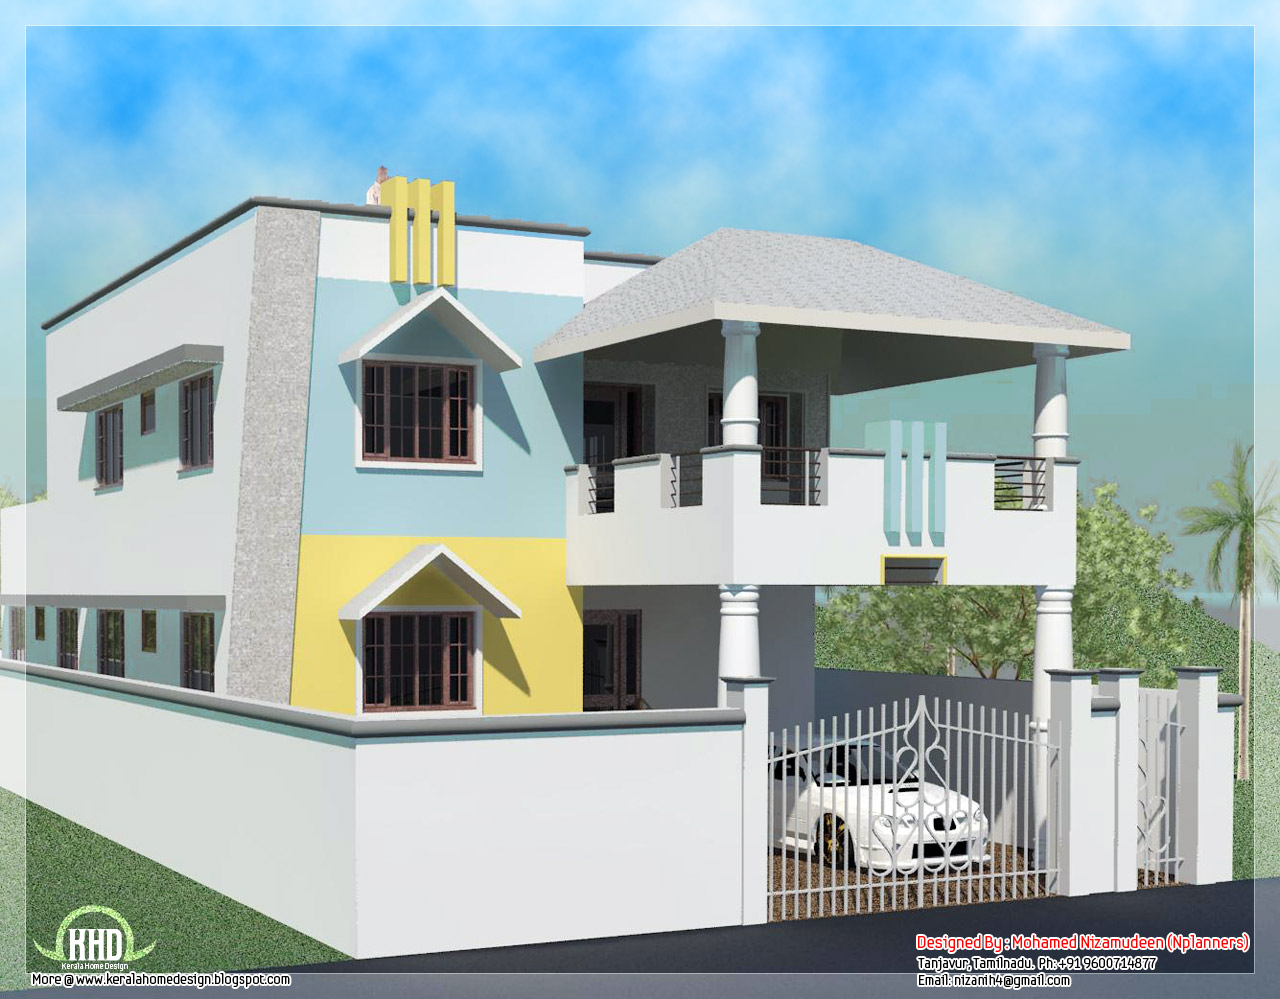 Remarkable Tamil Nadu Small House Design 1280 x 999 · 247 kB · jpeg